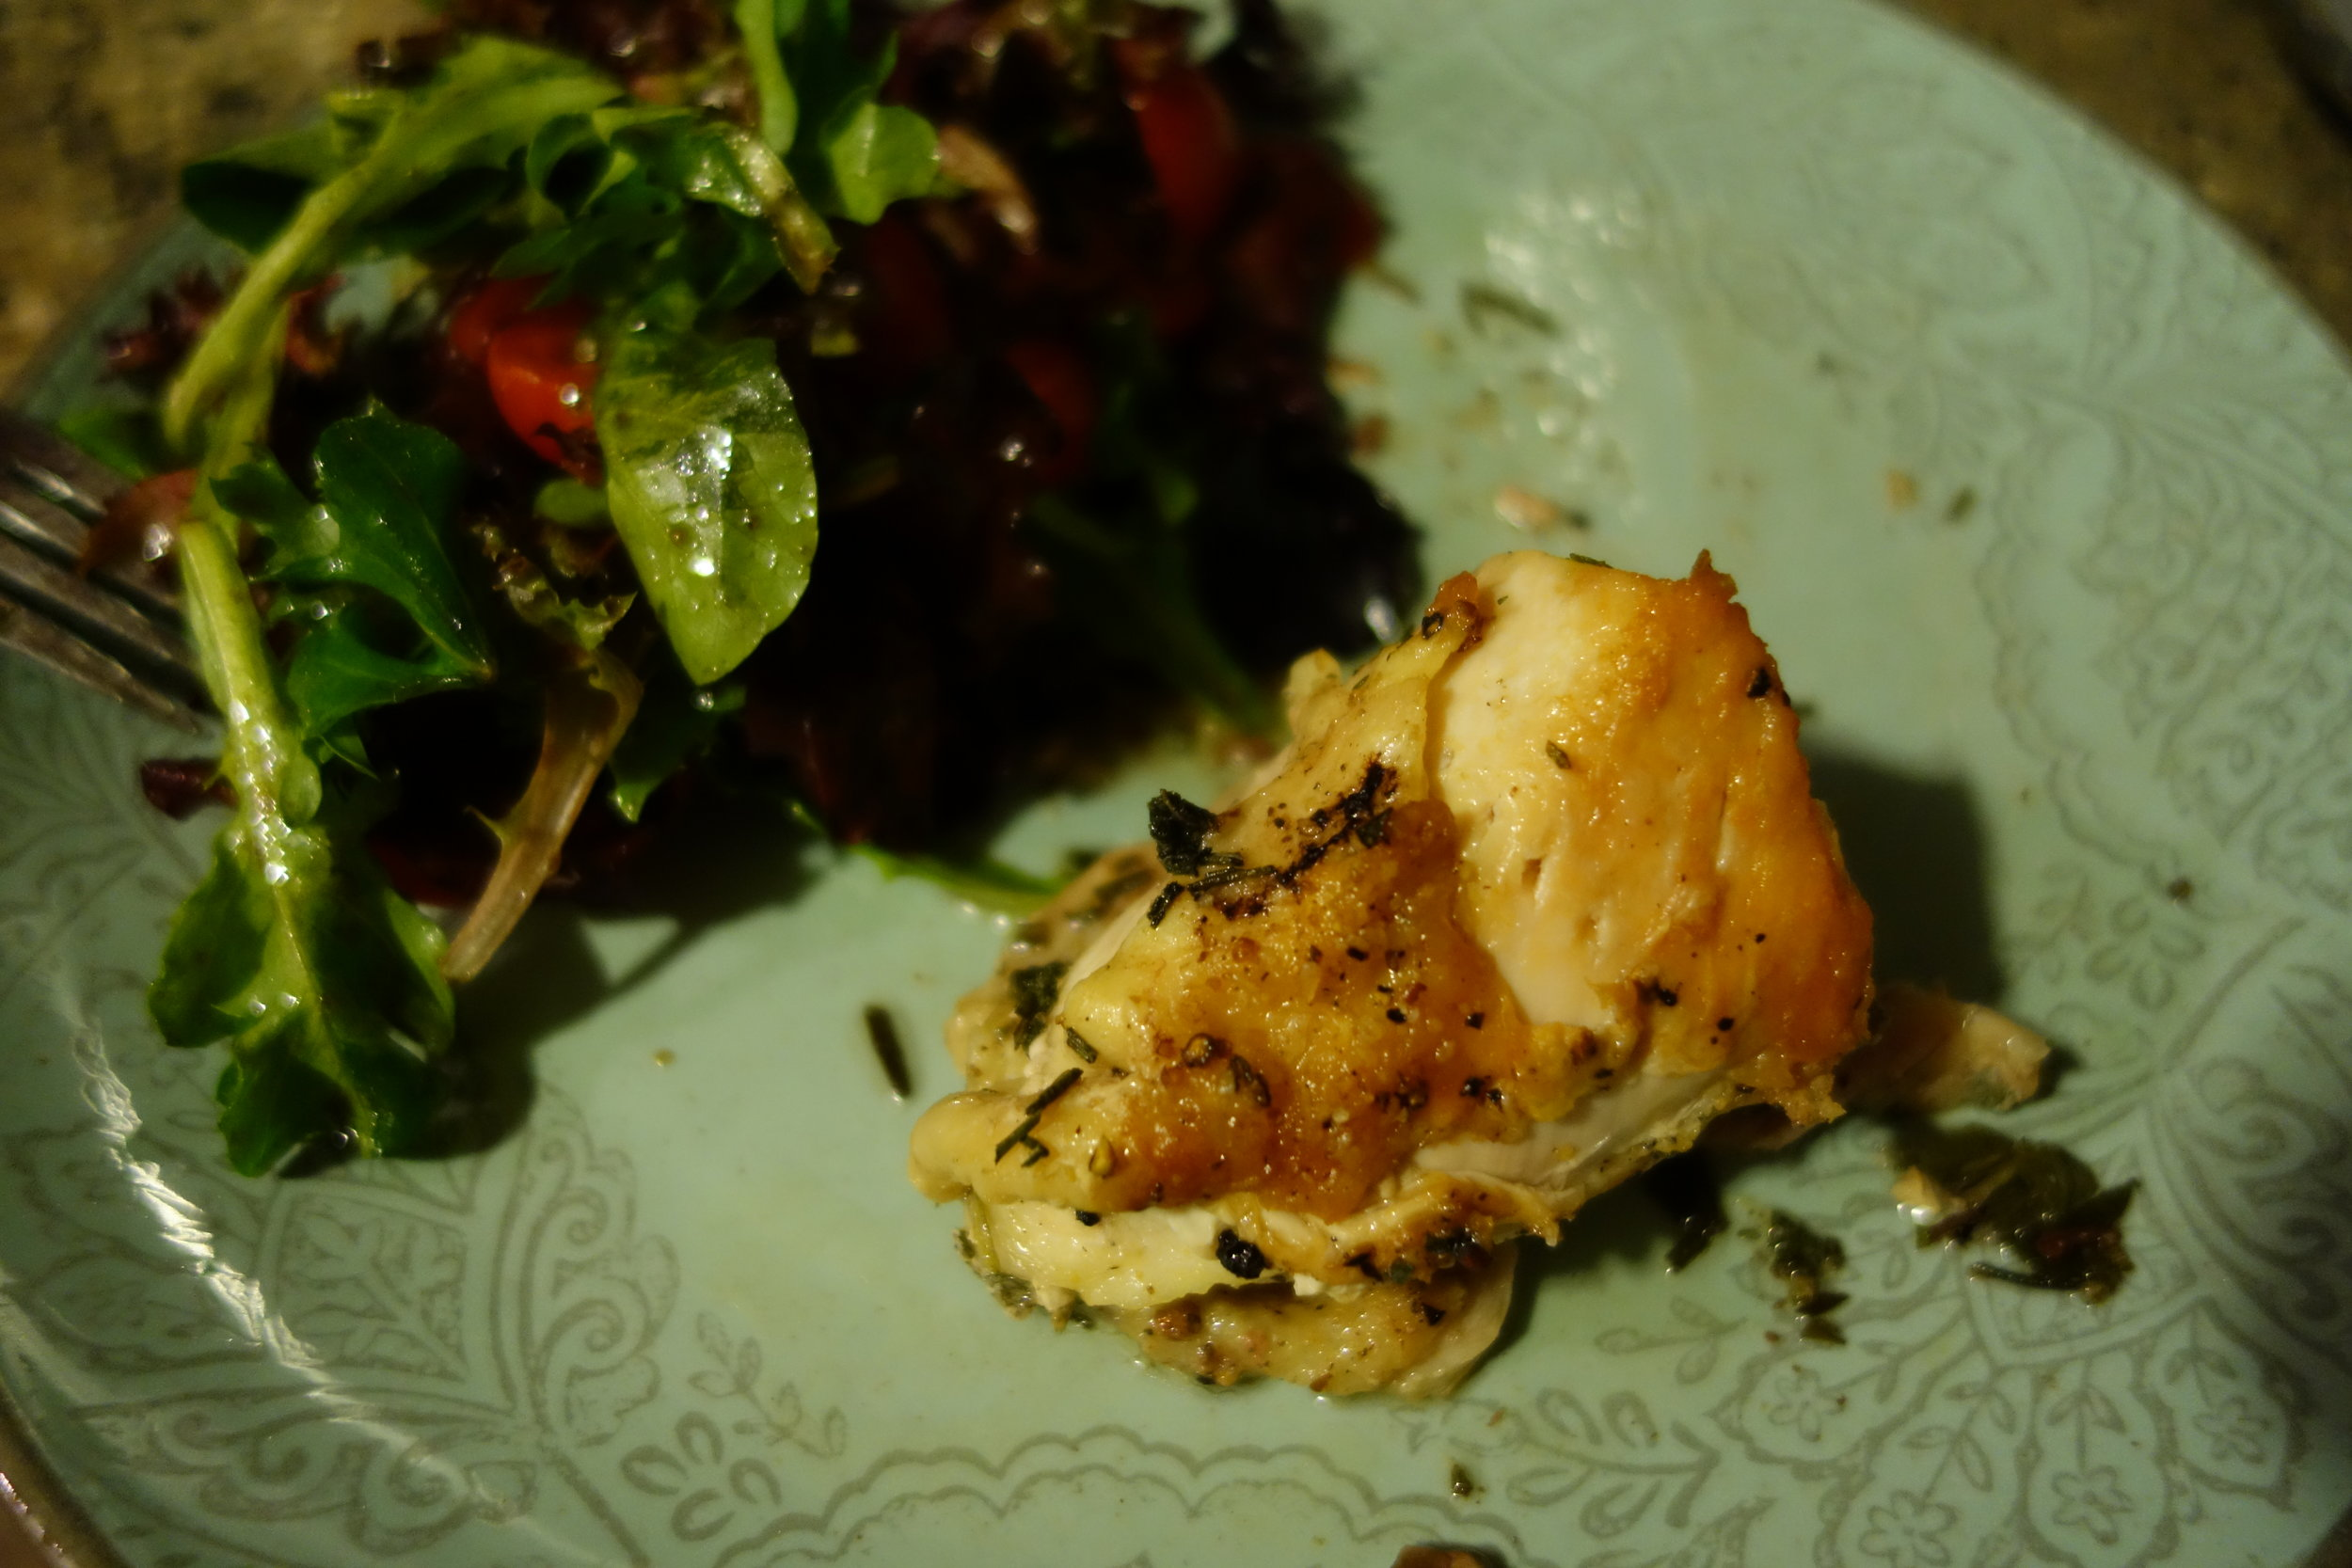 Herb roasted chicken and a fresh salad. Simple, but effective.